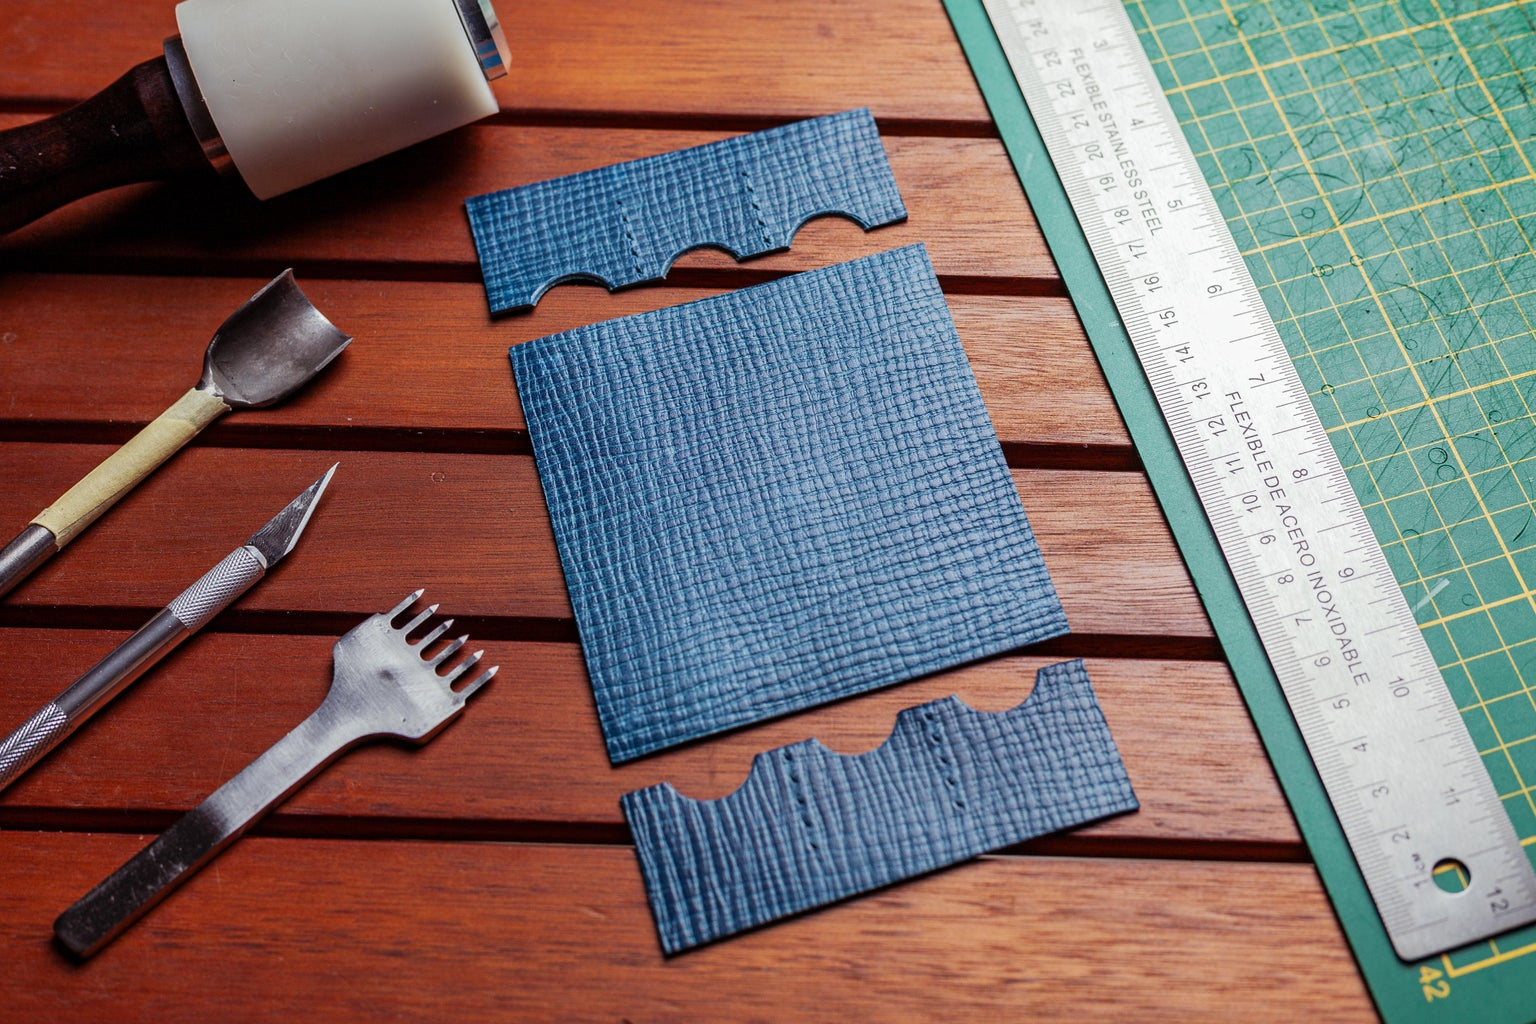 Print, Cut and Tracing Out the Pattern